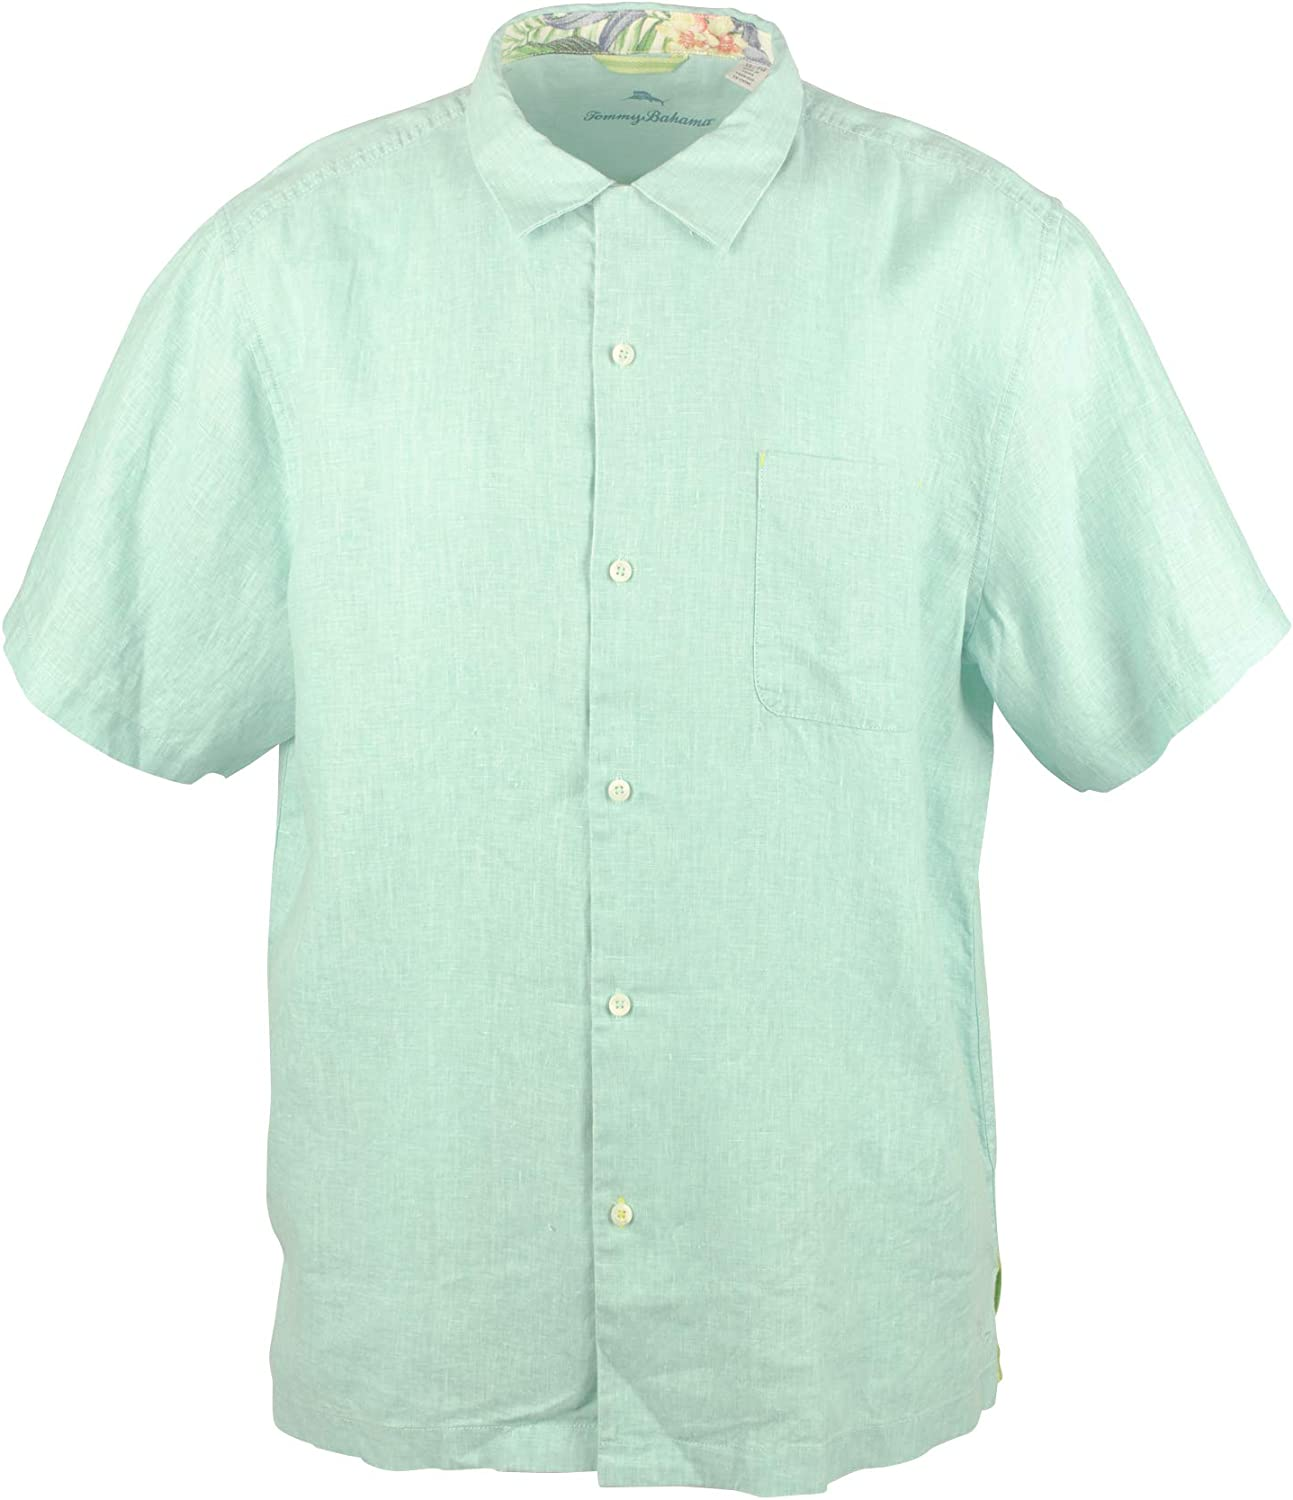 Tommy Bahama Sea Glass OFFer Camp Linen 100% Shirt famous